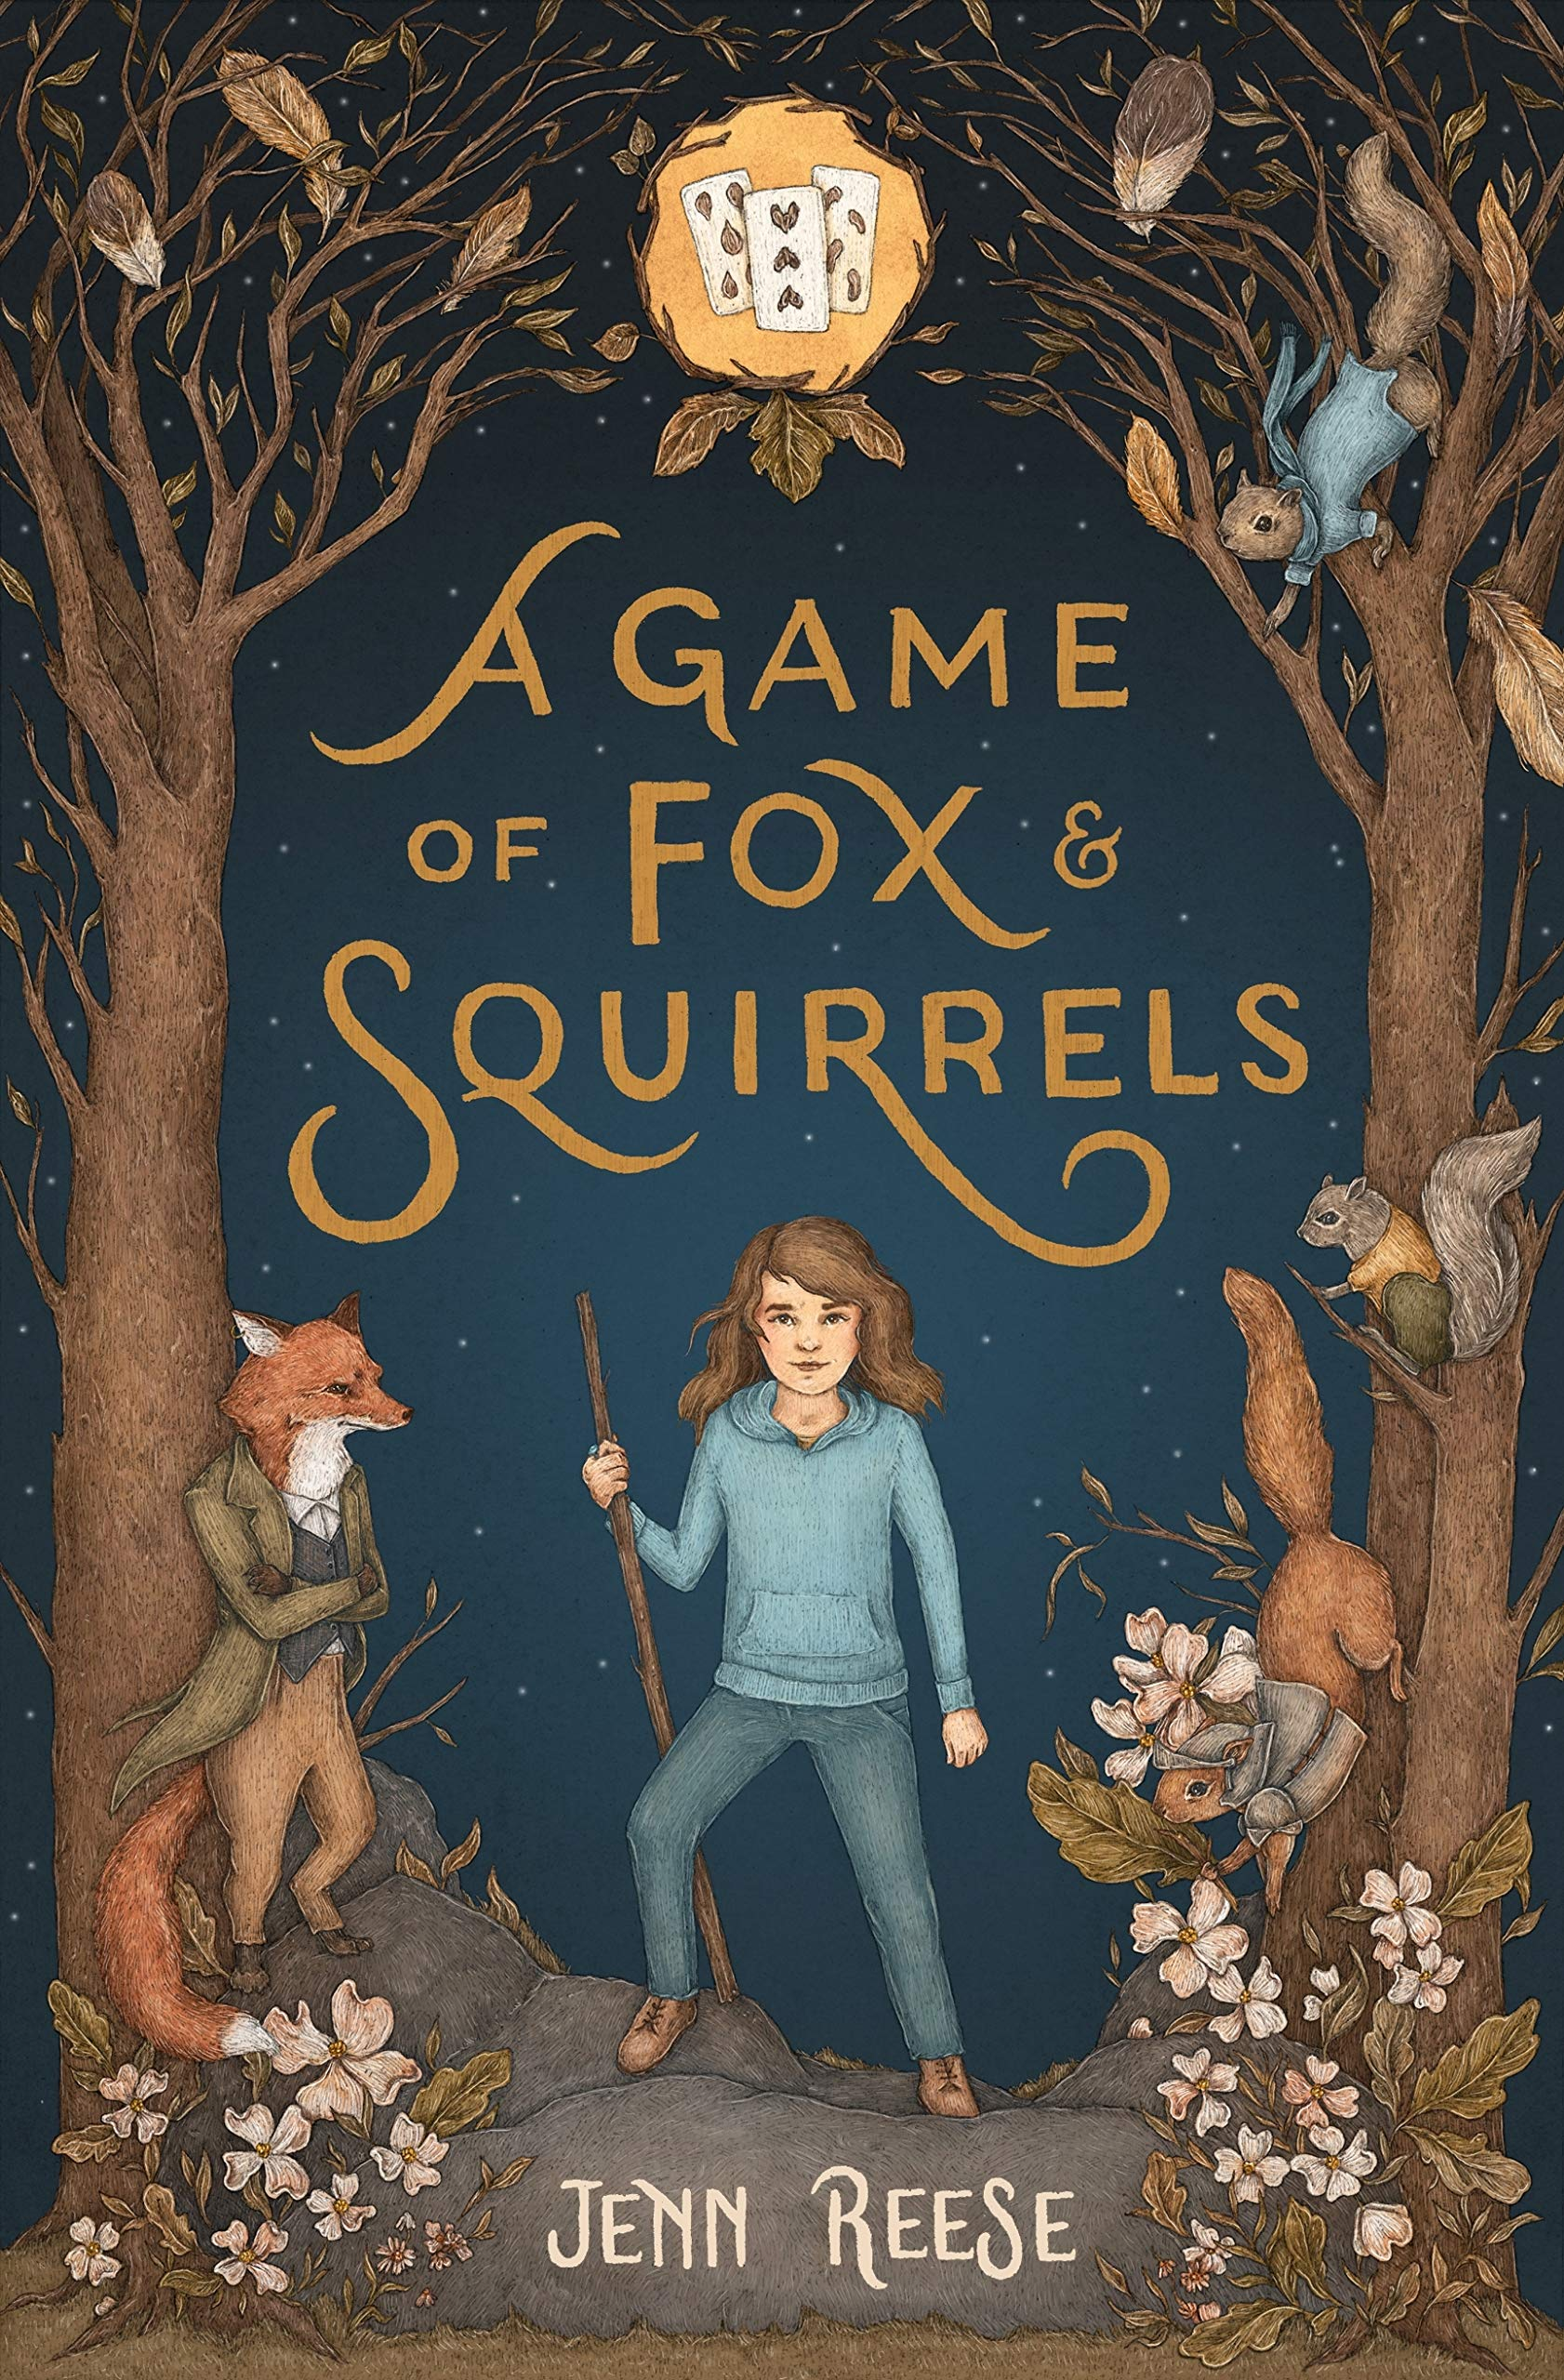 A Game of Fox & Squirrels: Reese, Jenn: 9781250243010: Amazon.com ...